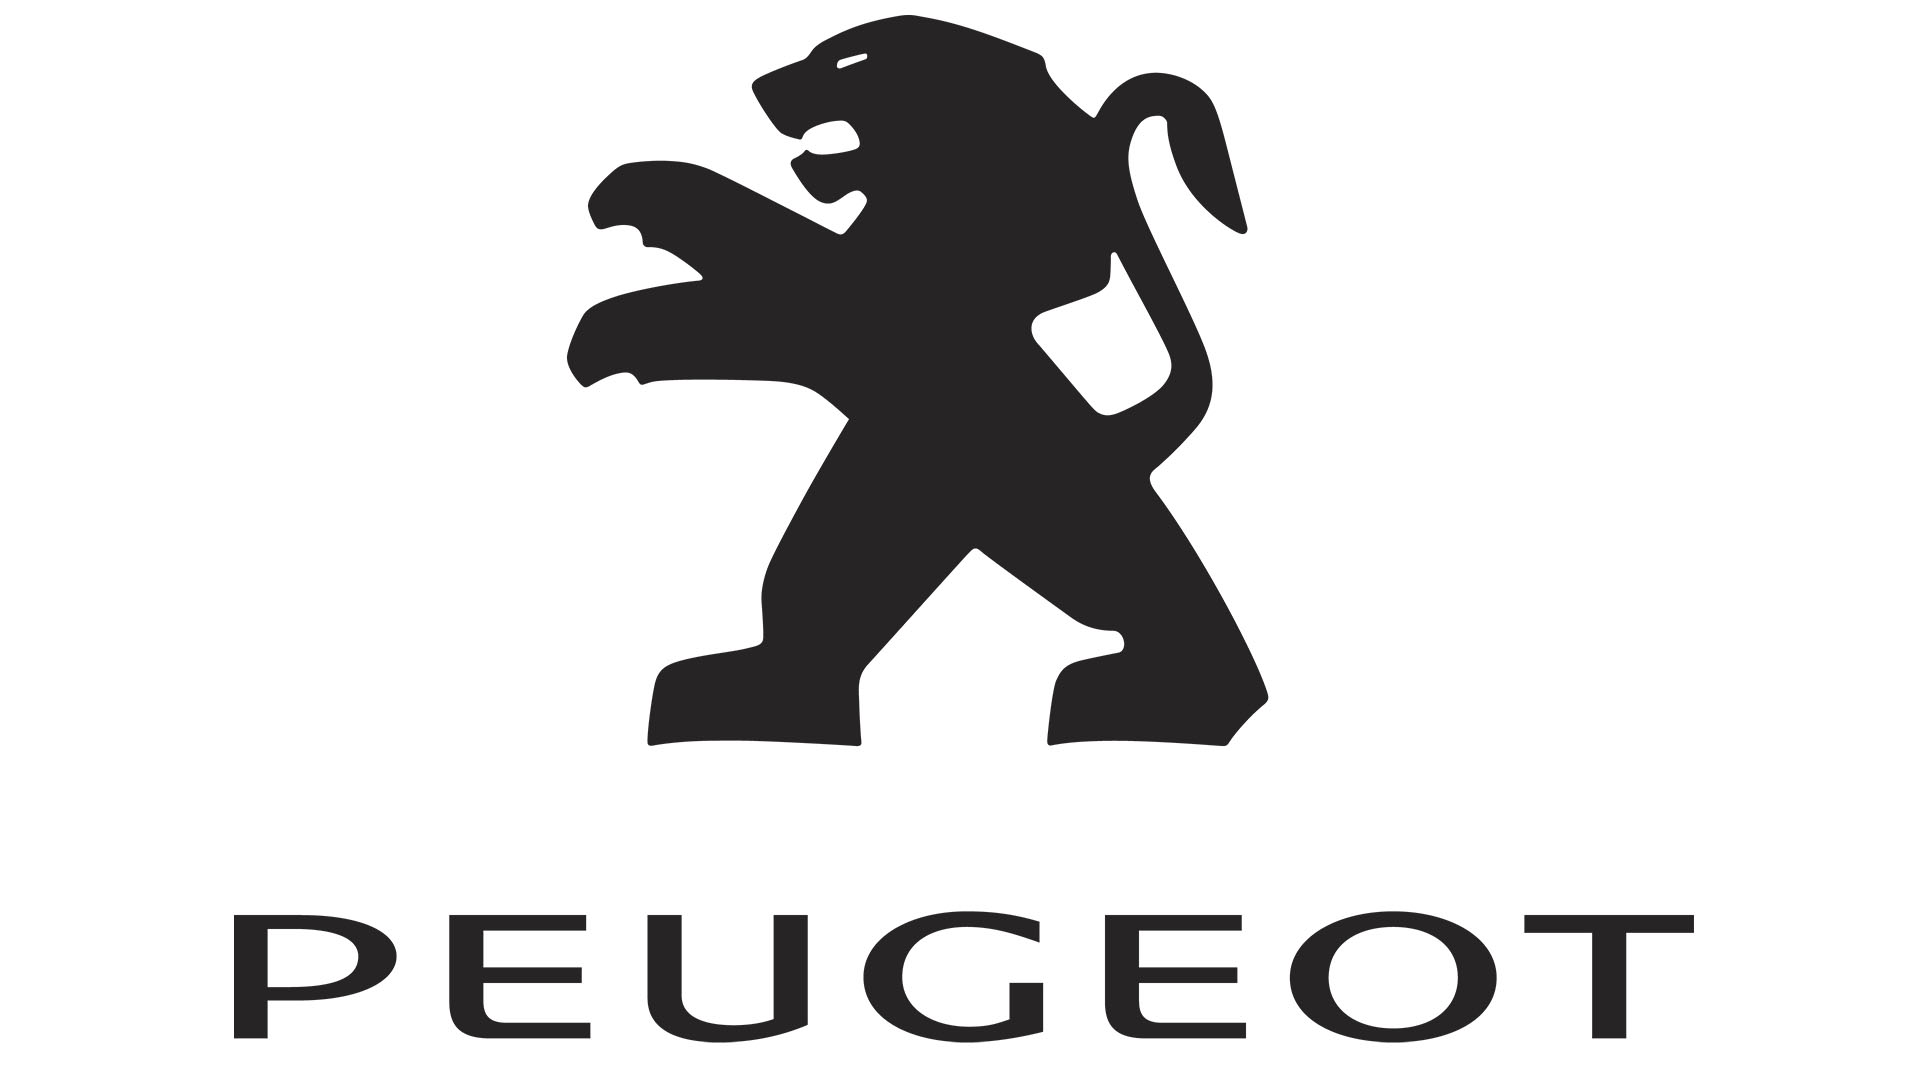 Peugeot Logo Meaning And History Peugeot Symbol